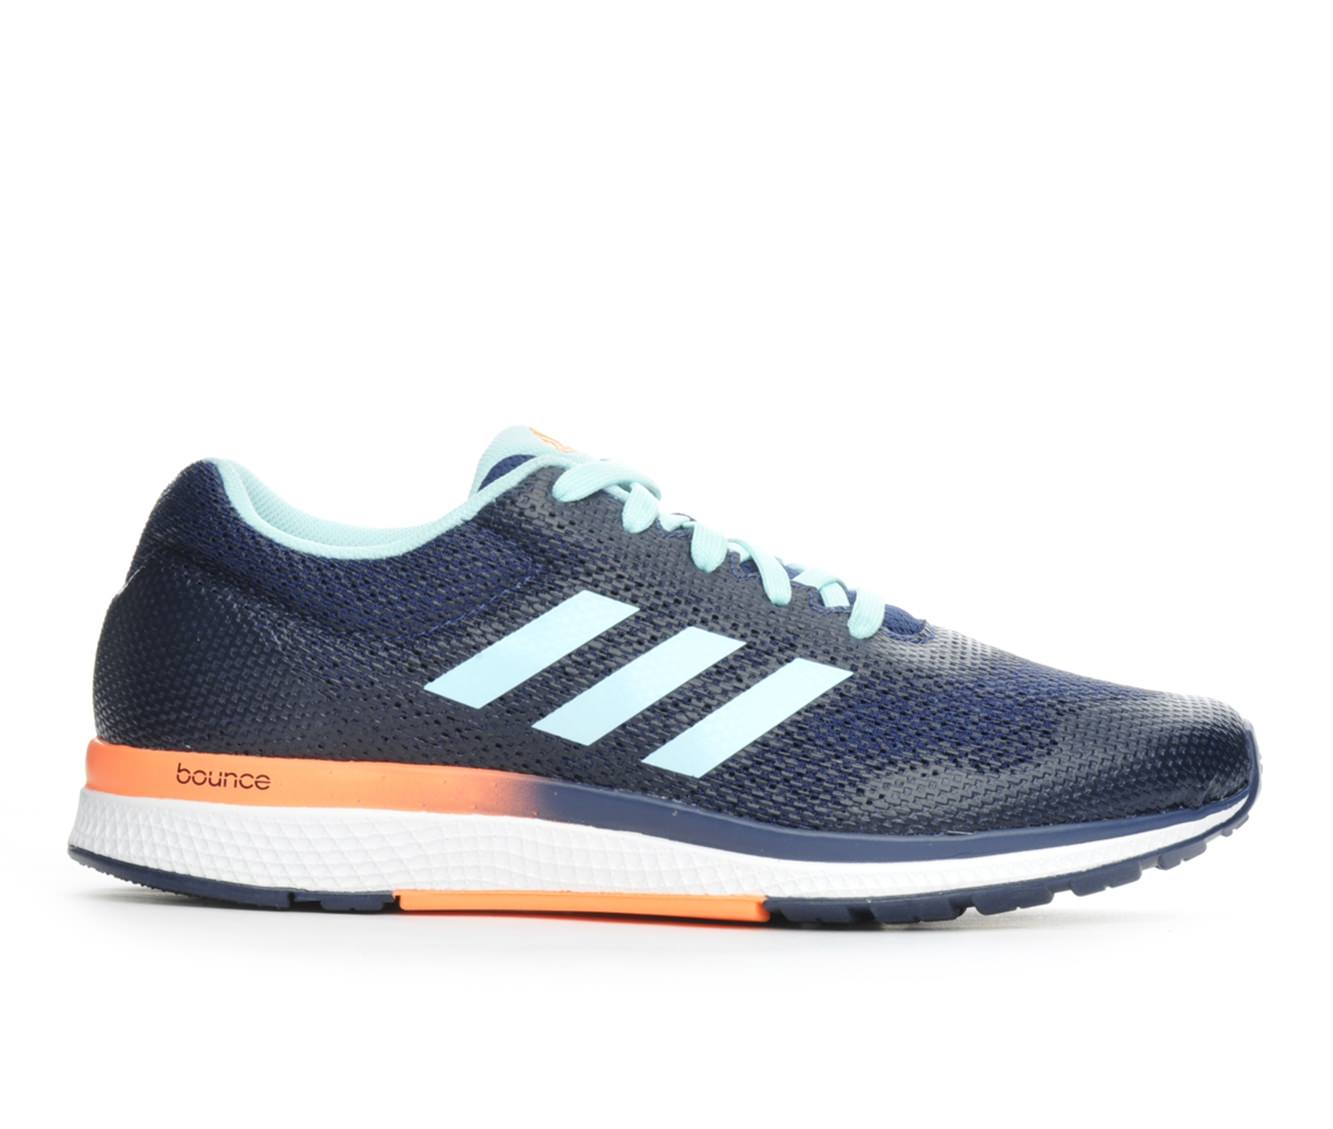 Women's Adidas Mana Bounce 2 W Aramis Running Shoes (Blue - Size 9.5) 1616839